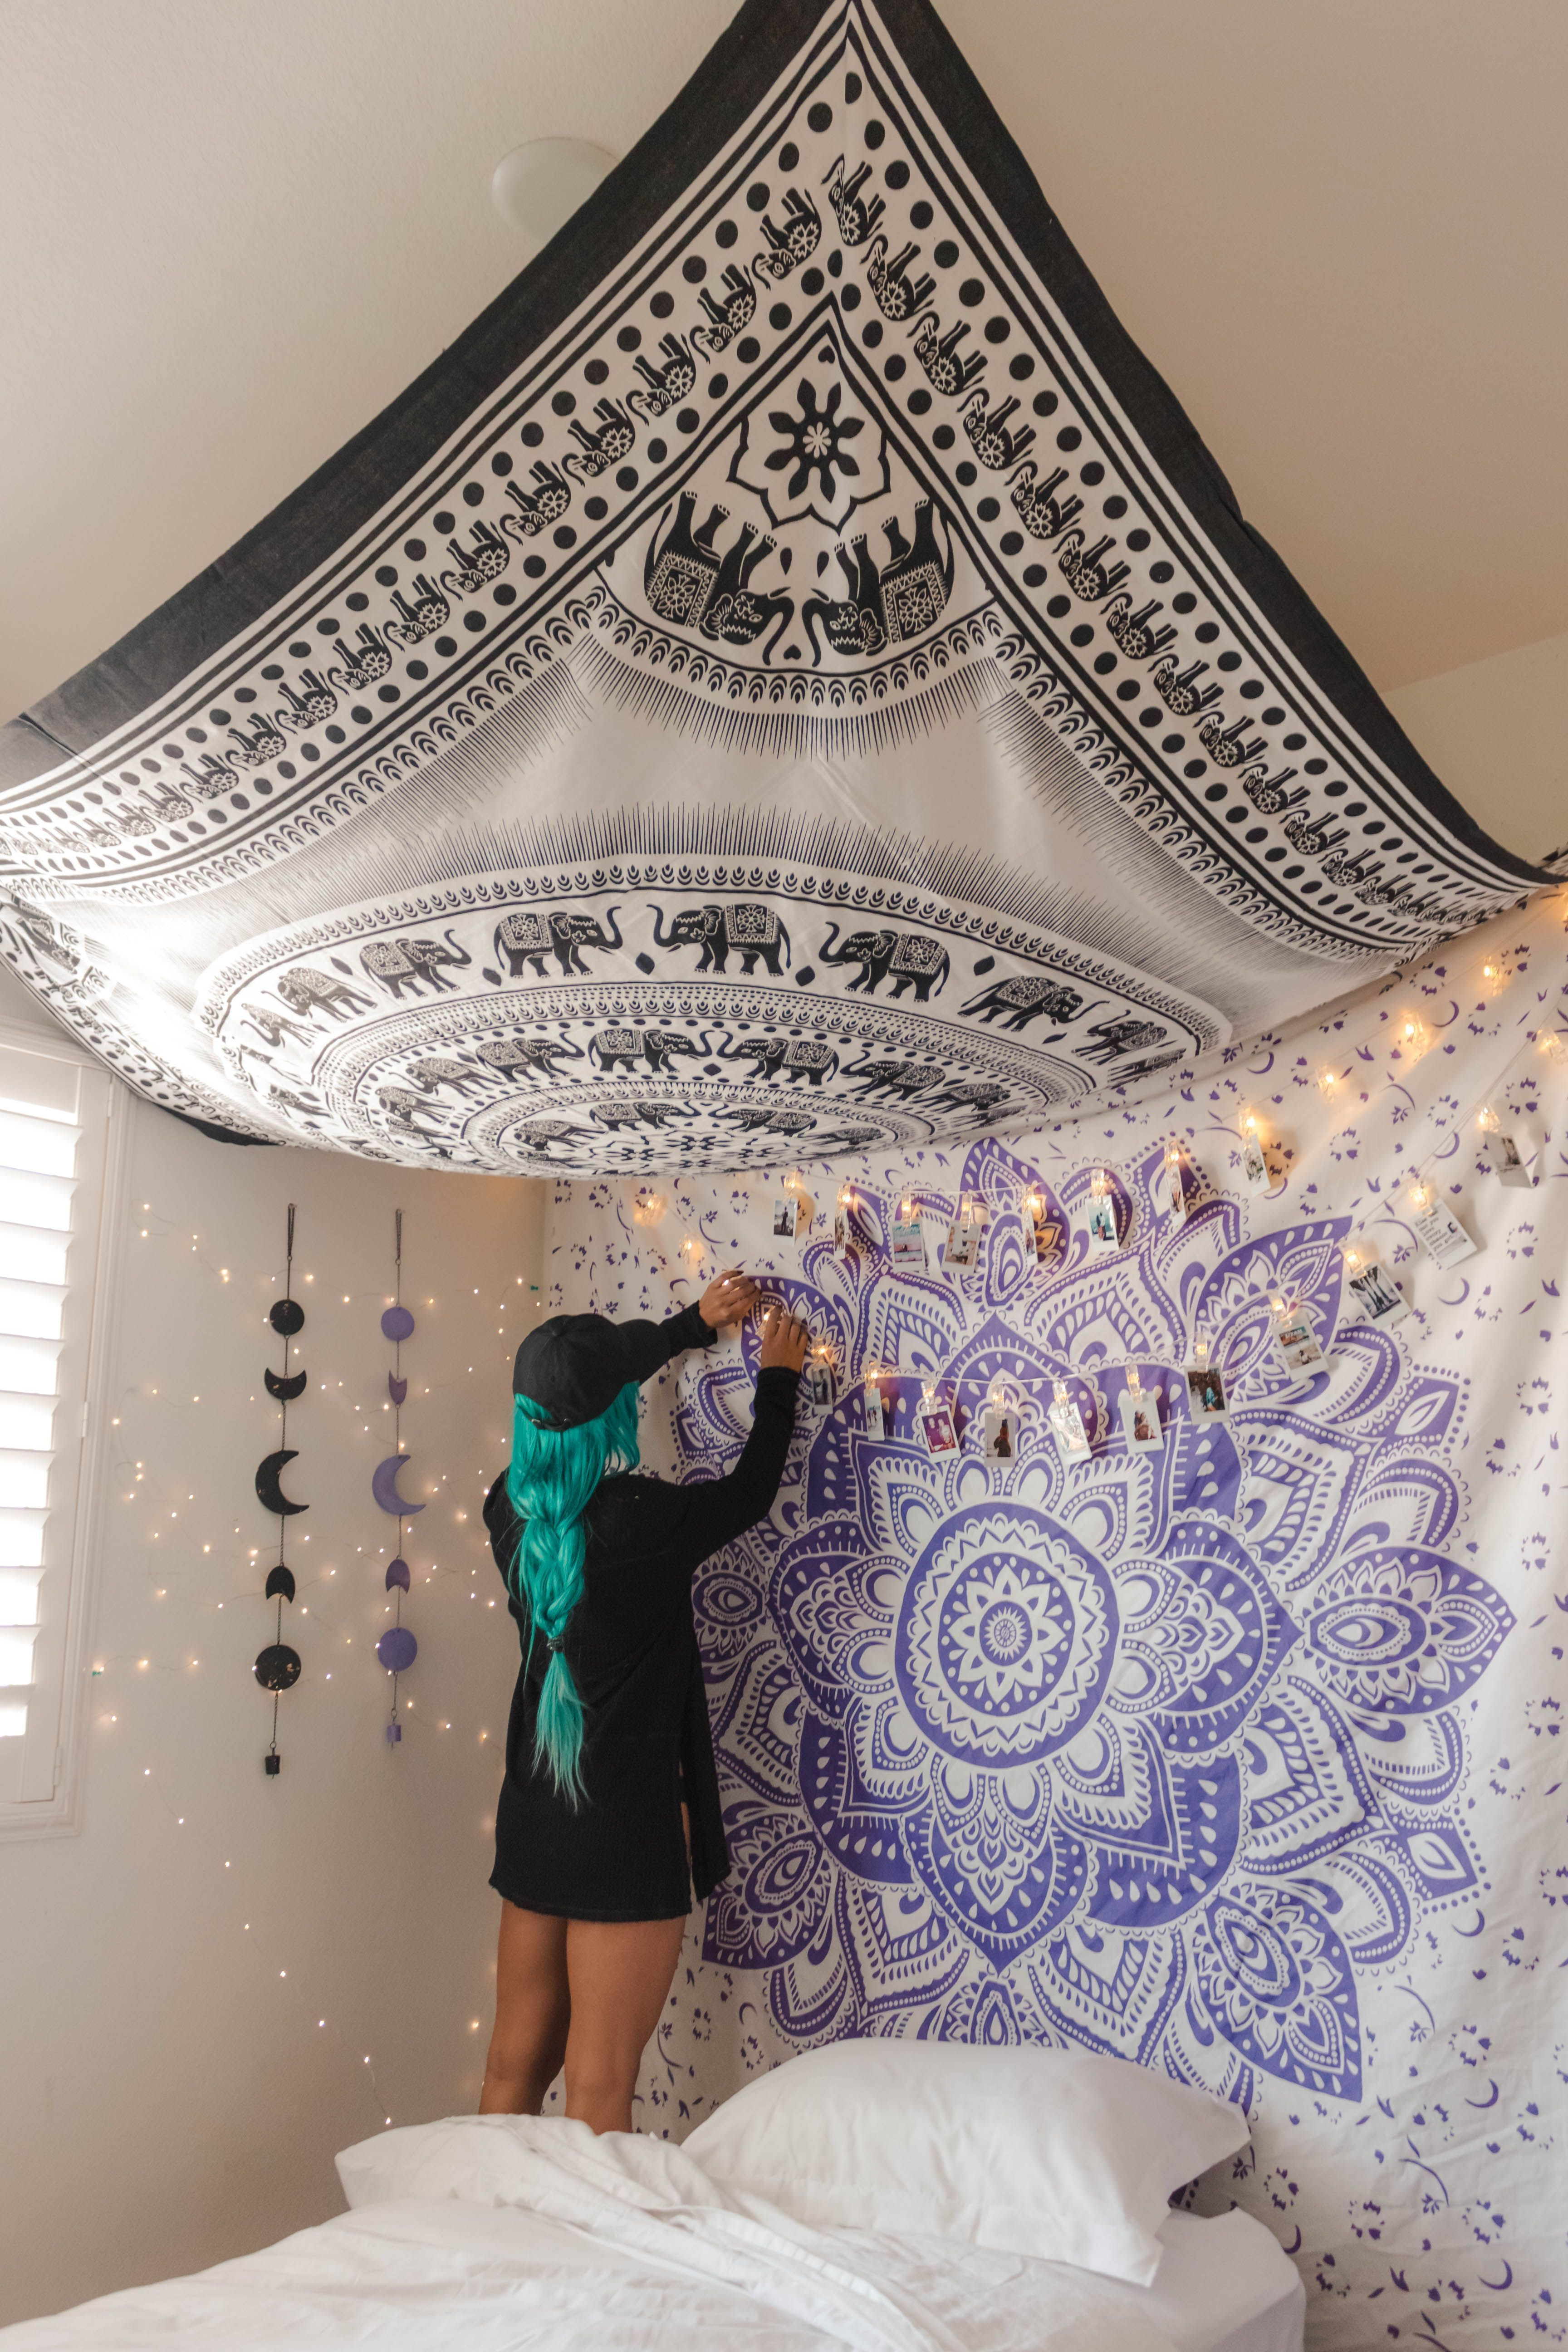 48 Easy and Awesome Wall Light Ideas for Teens images